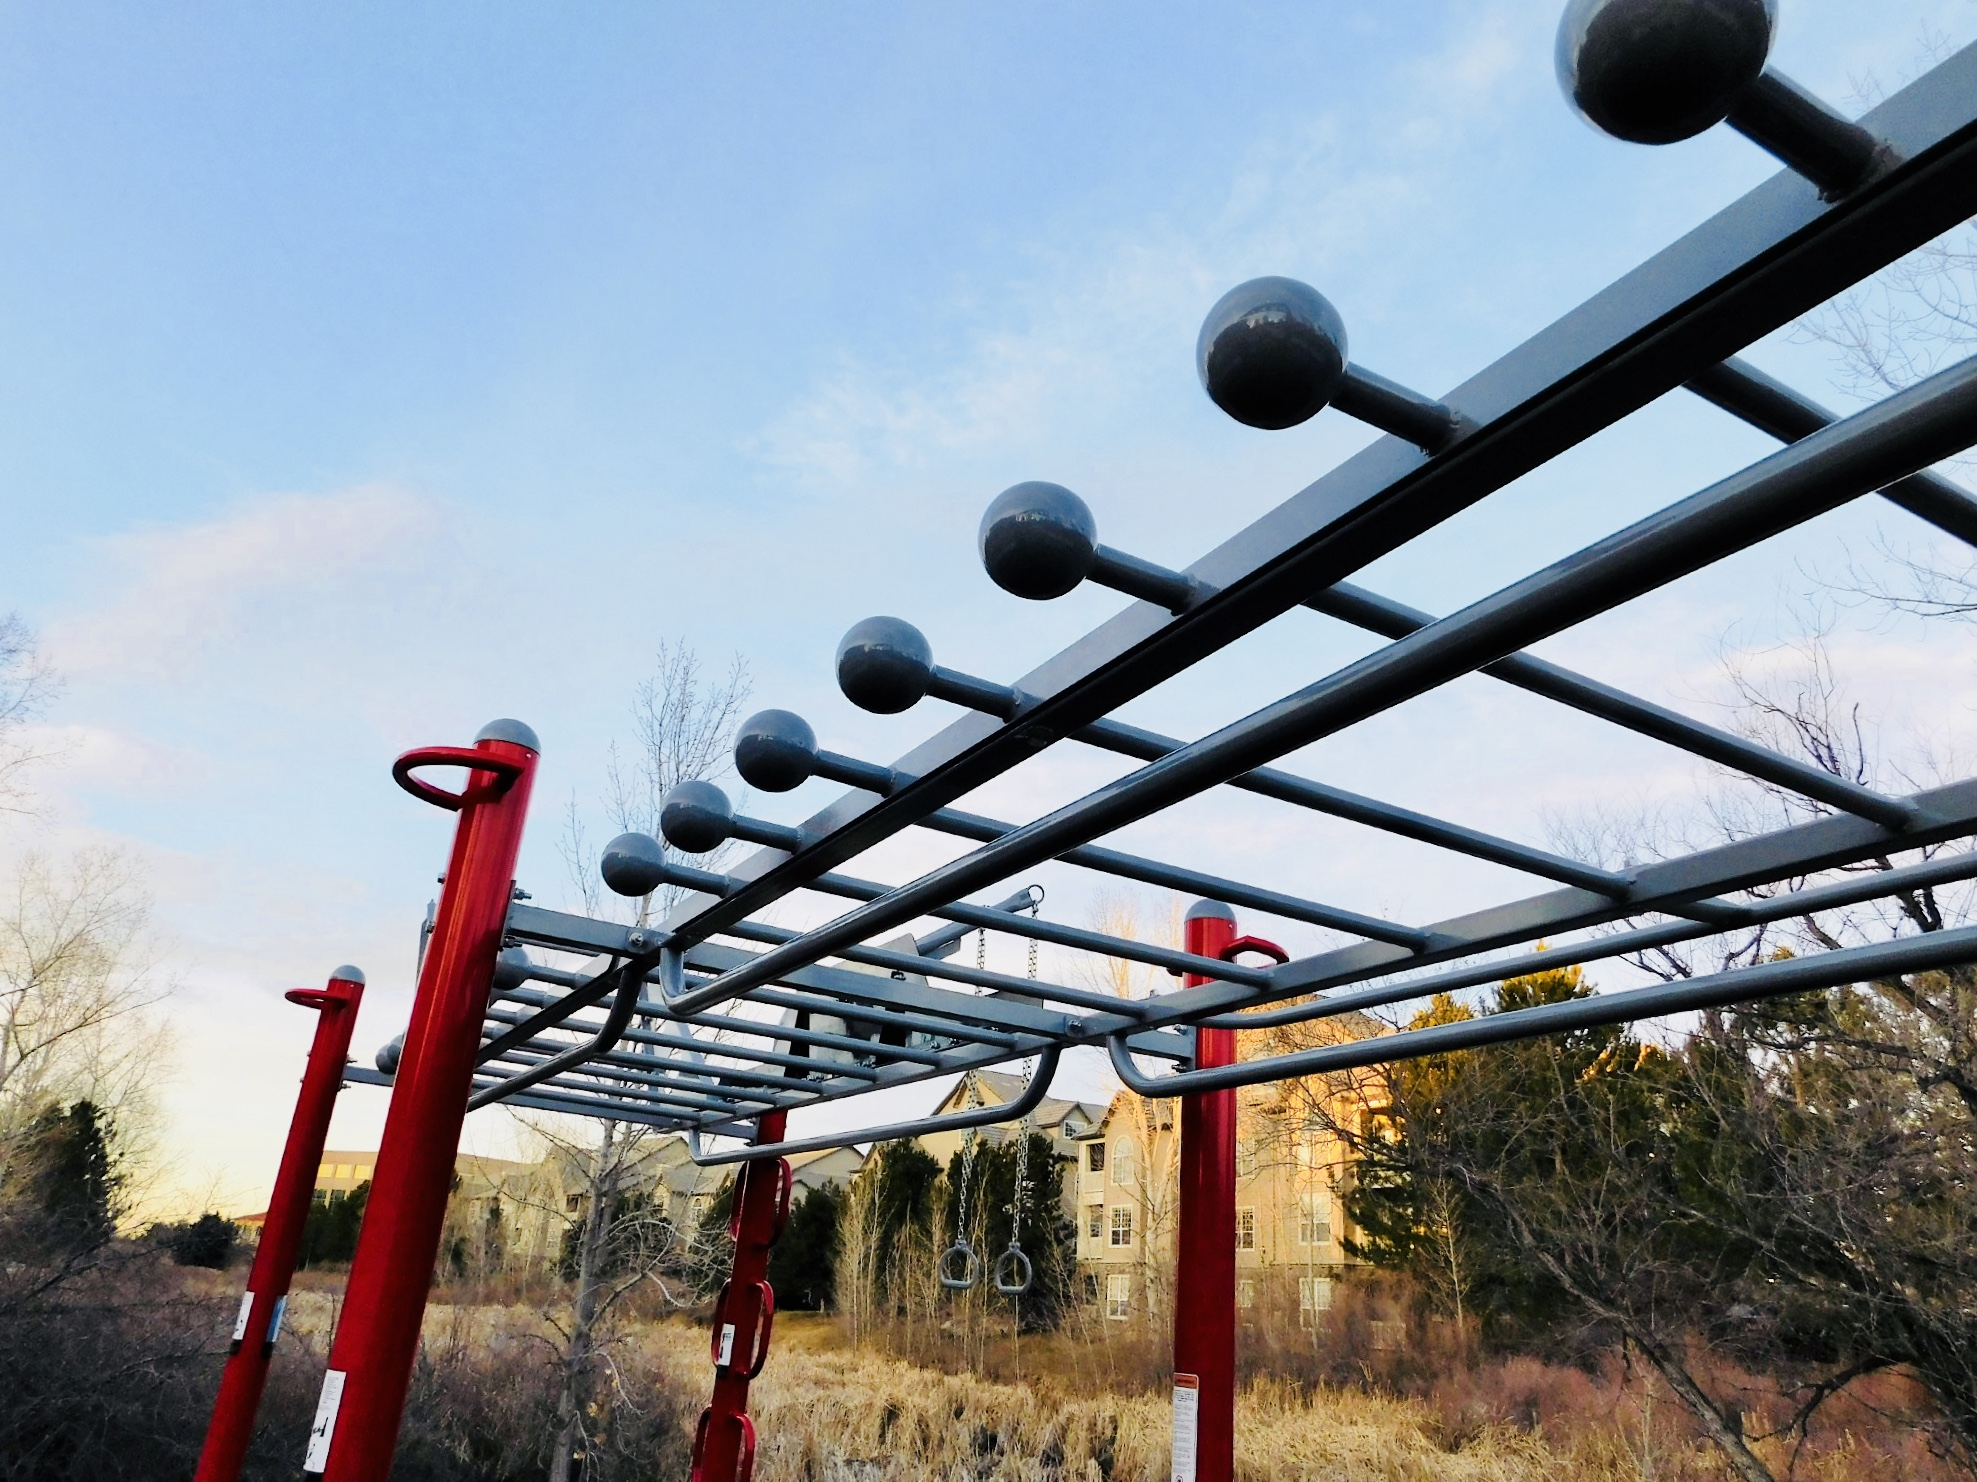 Double Monkey Bars with Side Rail Pull-up bars and Globe Grip rail